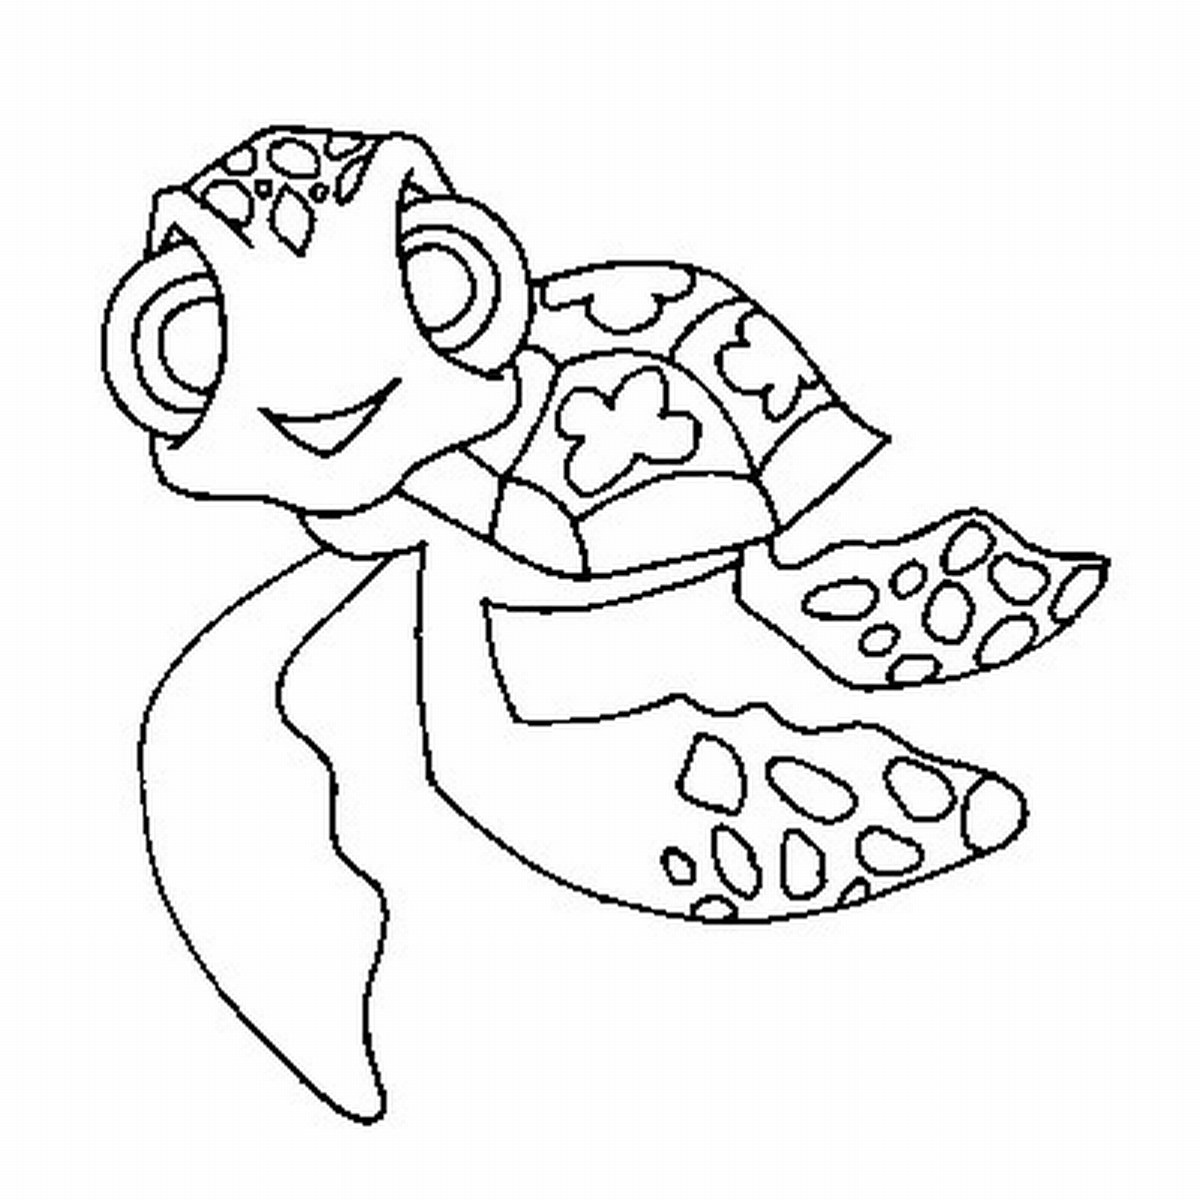 Turtle Coloring Pages Coloring Page Coloring Page Turtles Pages Free Incredible Turtle